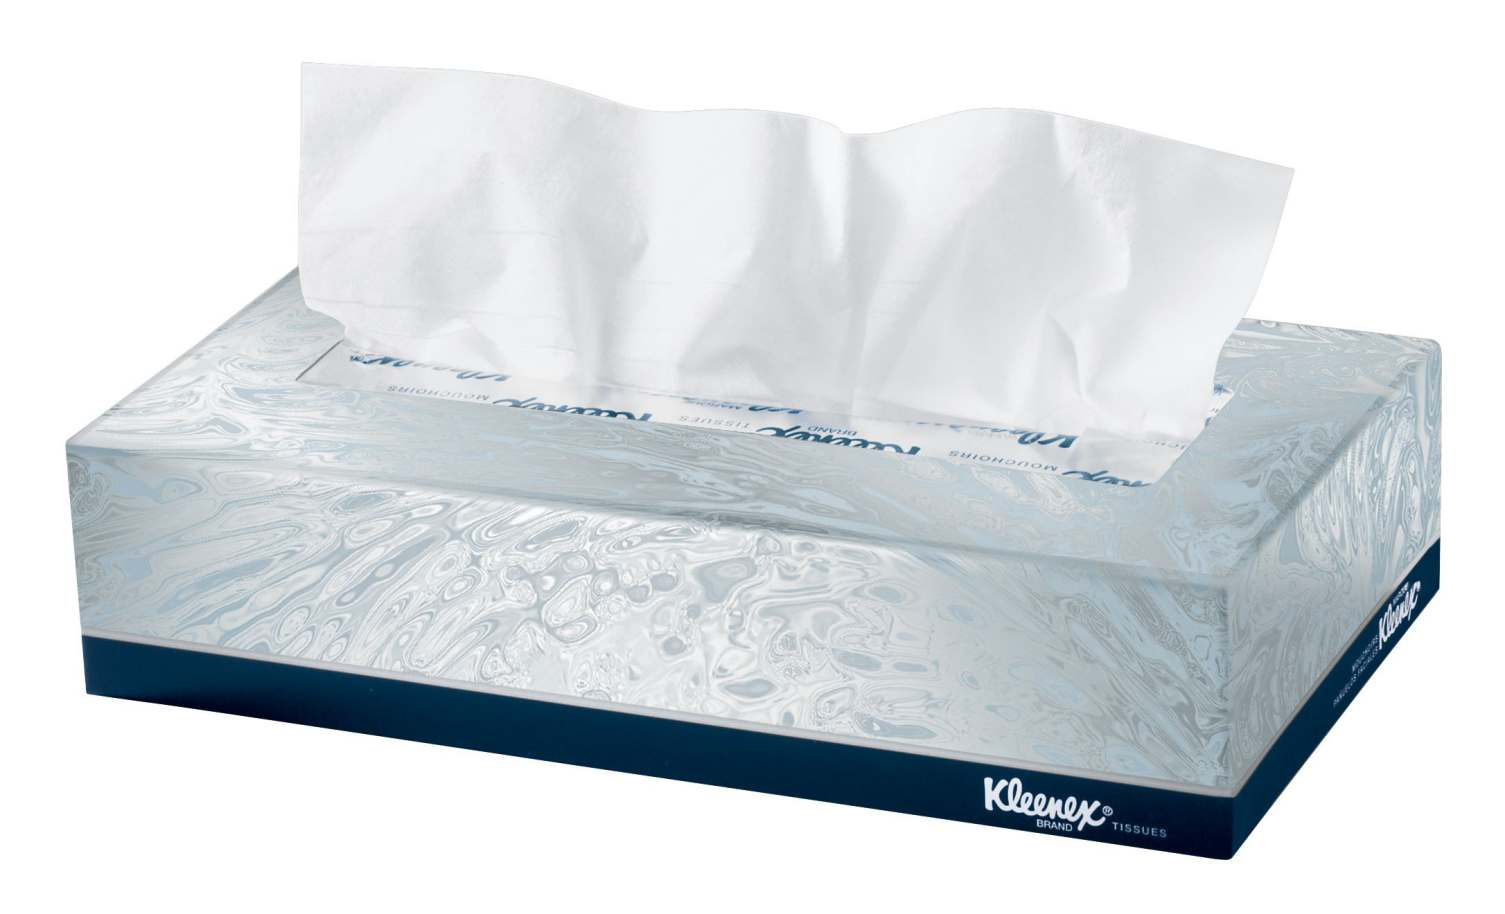 Image result for BOX OF TISSUES